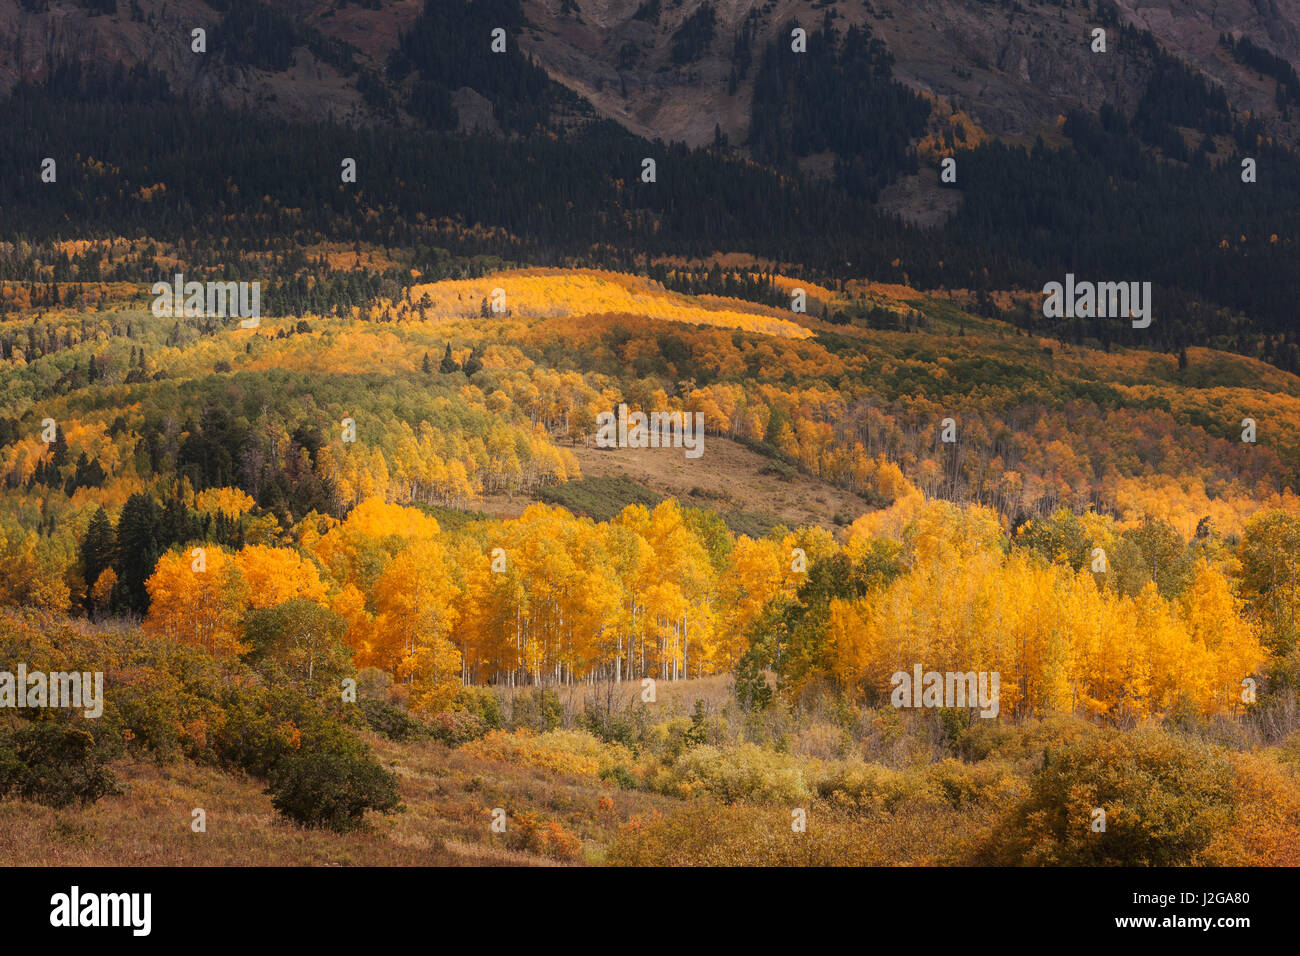 USA, Colorado, Uncompahgre National Forest. Mountain forest landscape. Credit as: Don Grall / Jaynes Gallery / DanitaDelimont.com - Stock Image